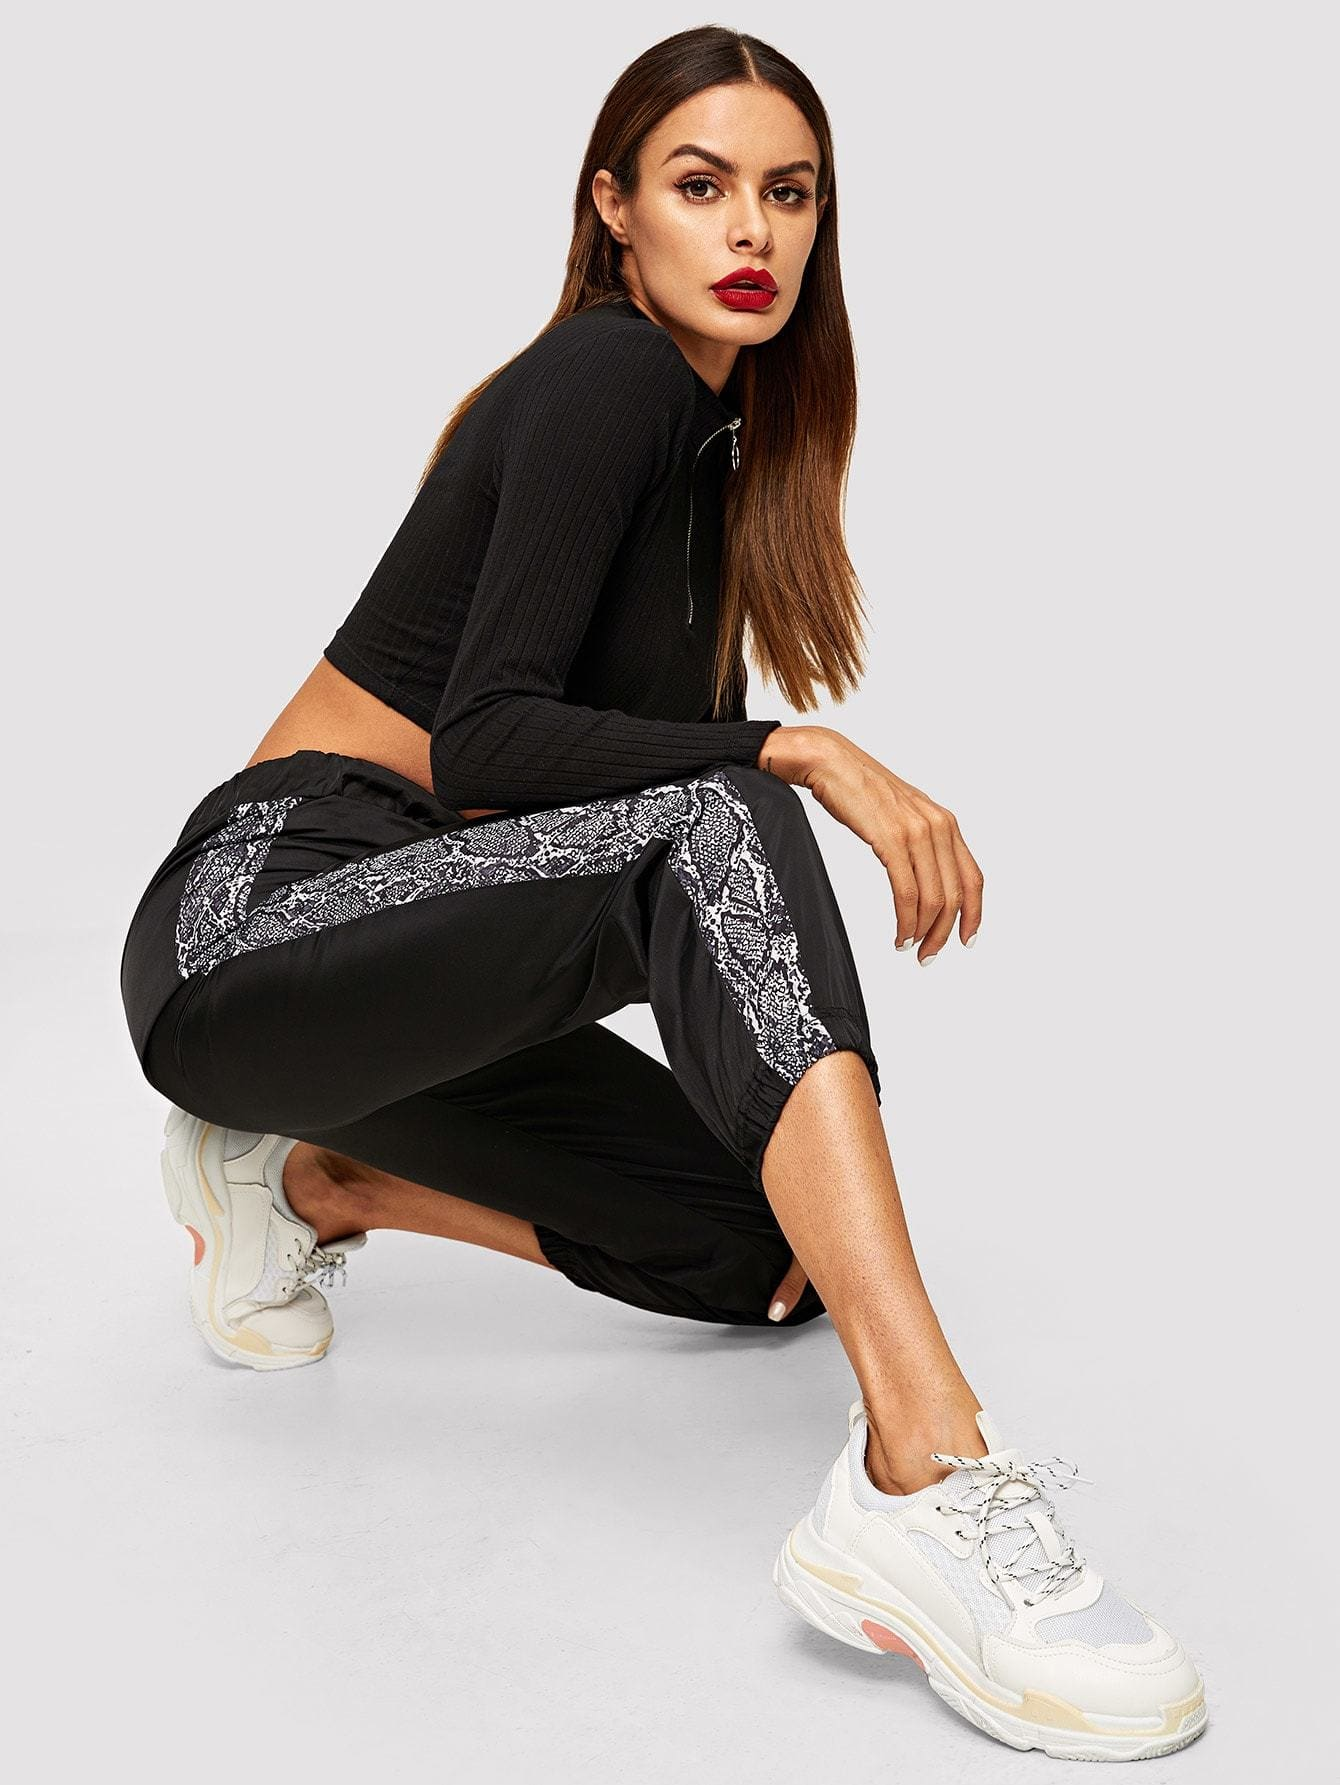 Contrast Tape Snake Print Side Pants - Fittness Leggings